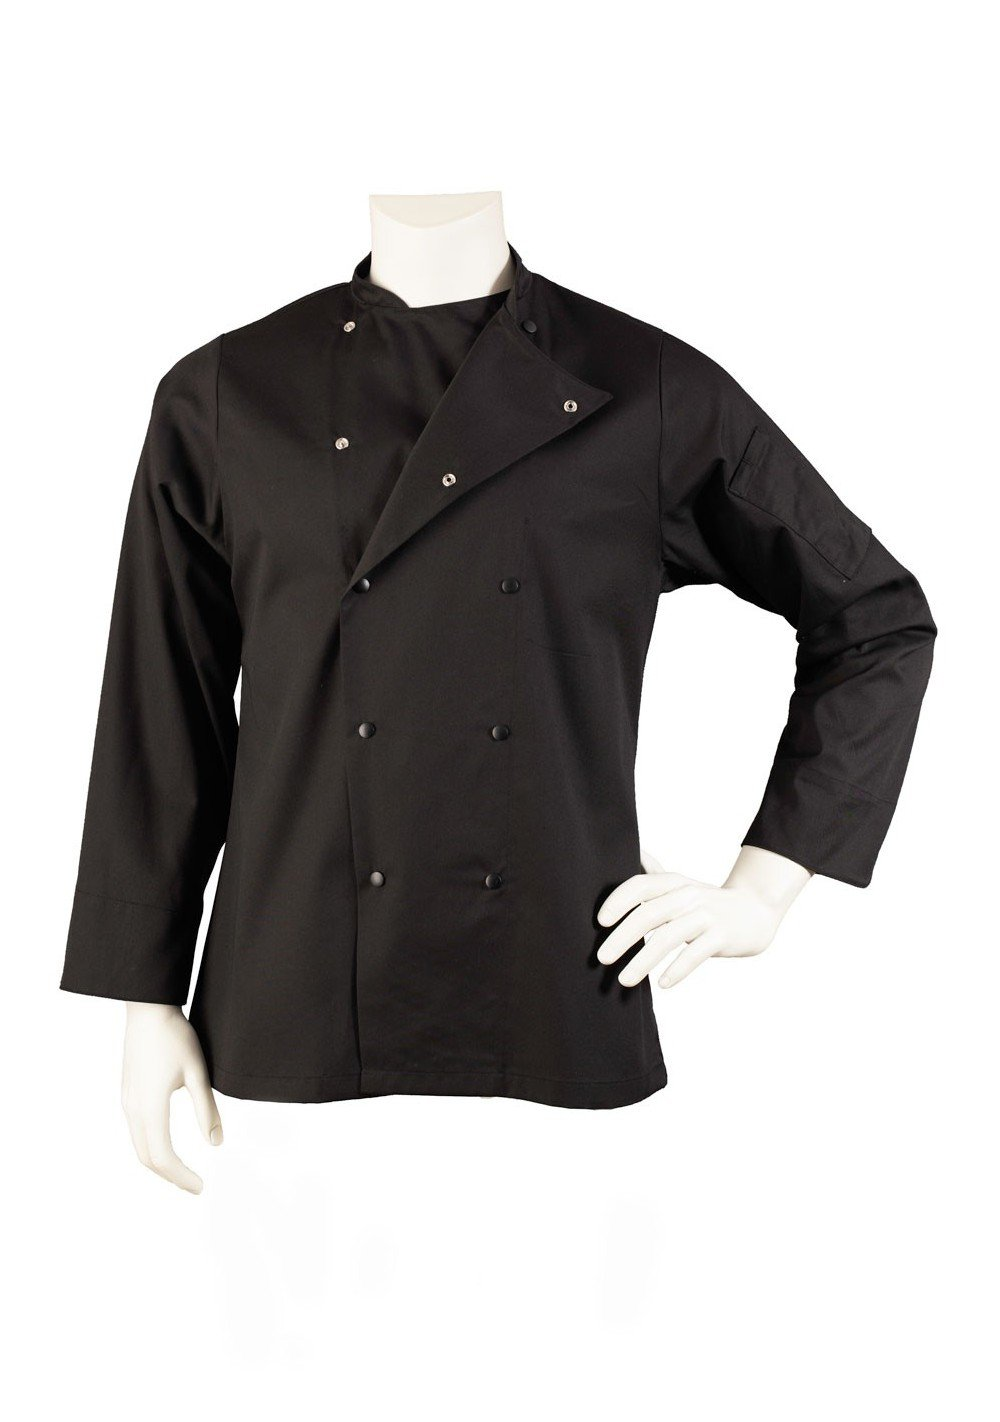 black mens chef jacket with fast snap buttons